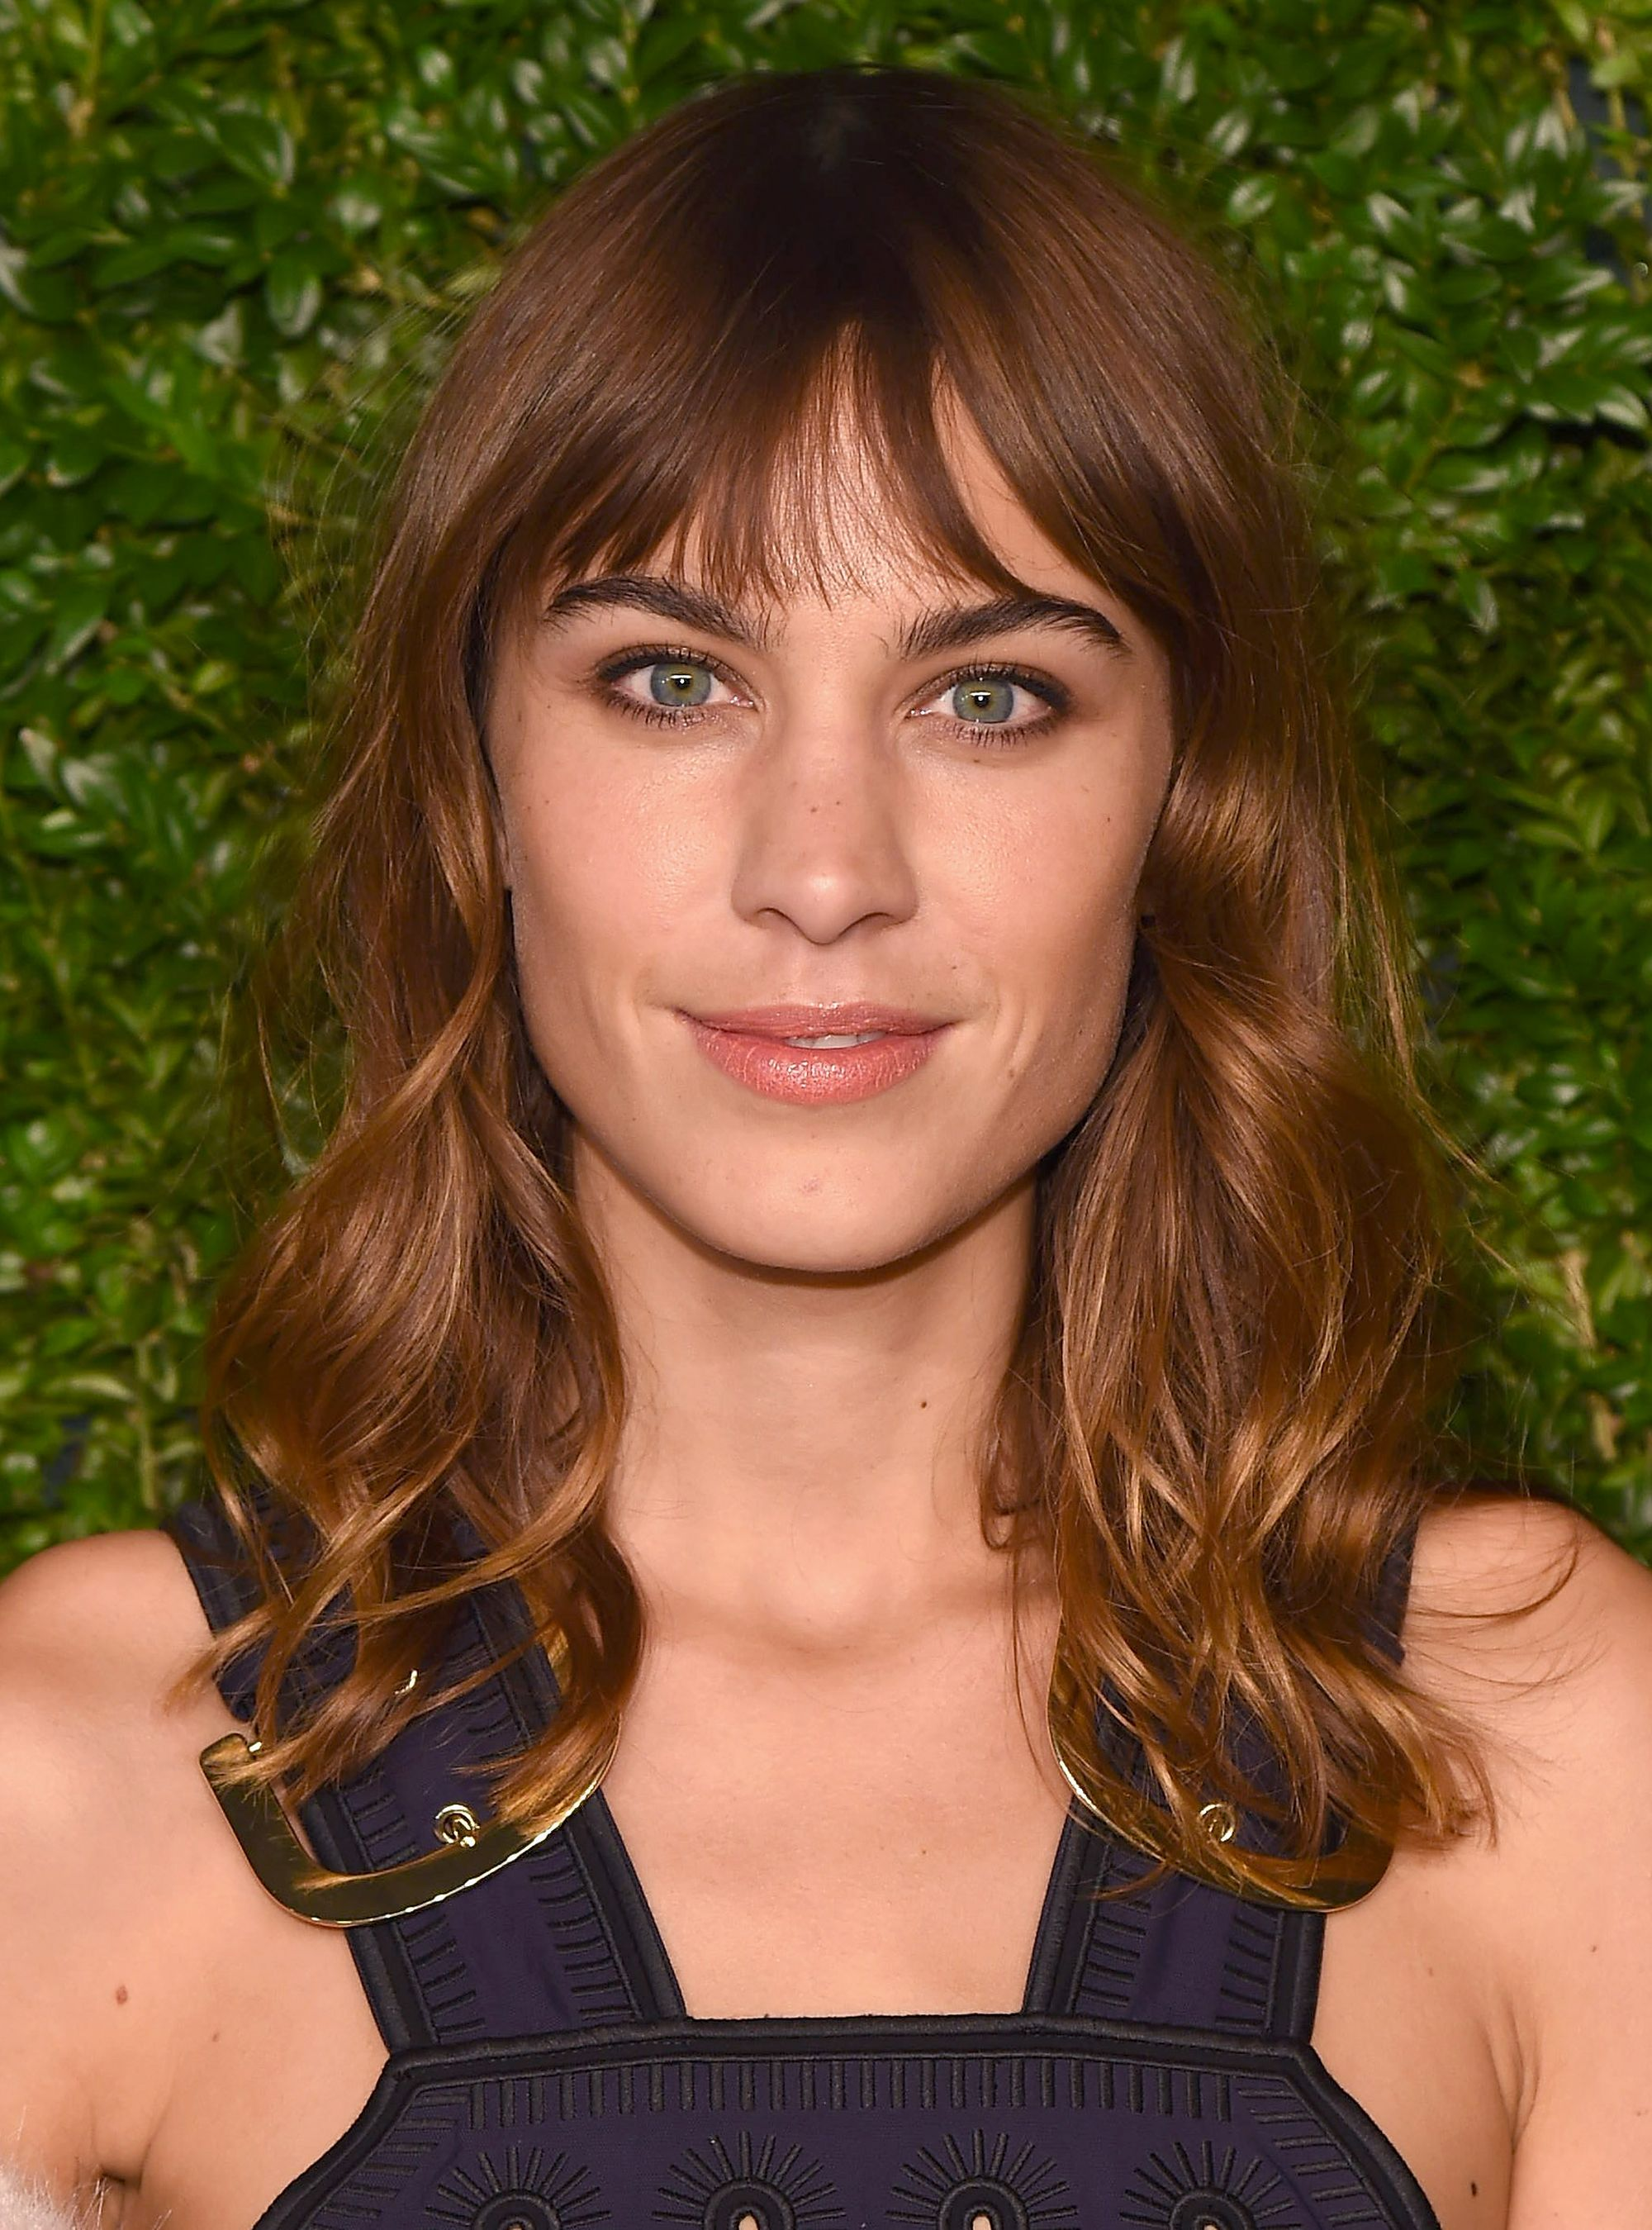 The Most Iconic Celebrity Bang Moments of All Time - Alexa Chung from InStyle.com